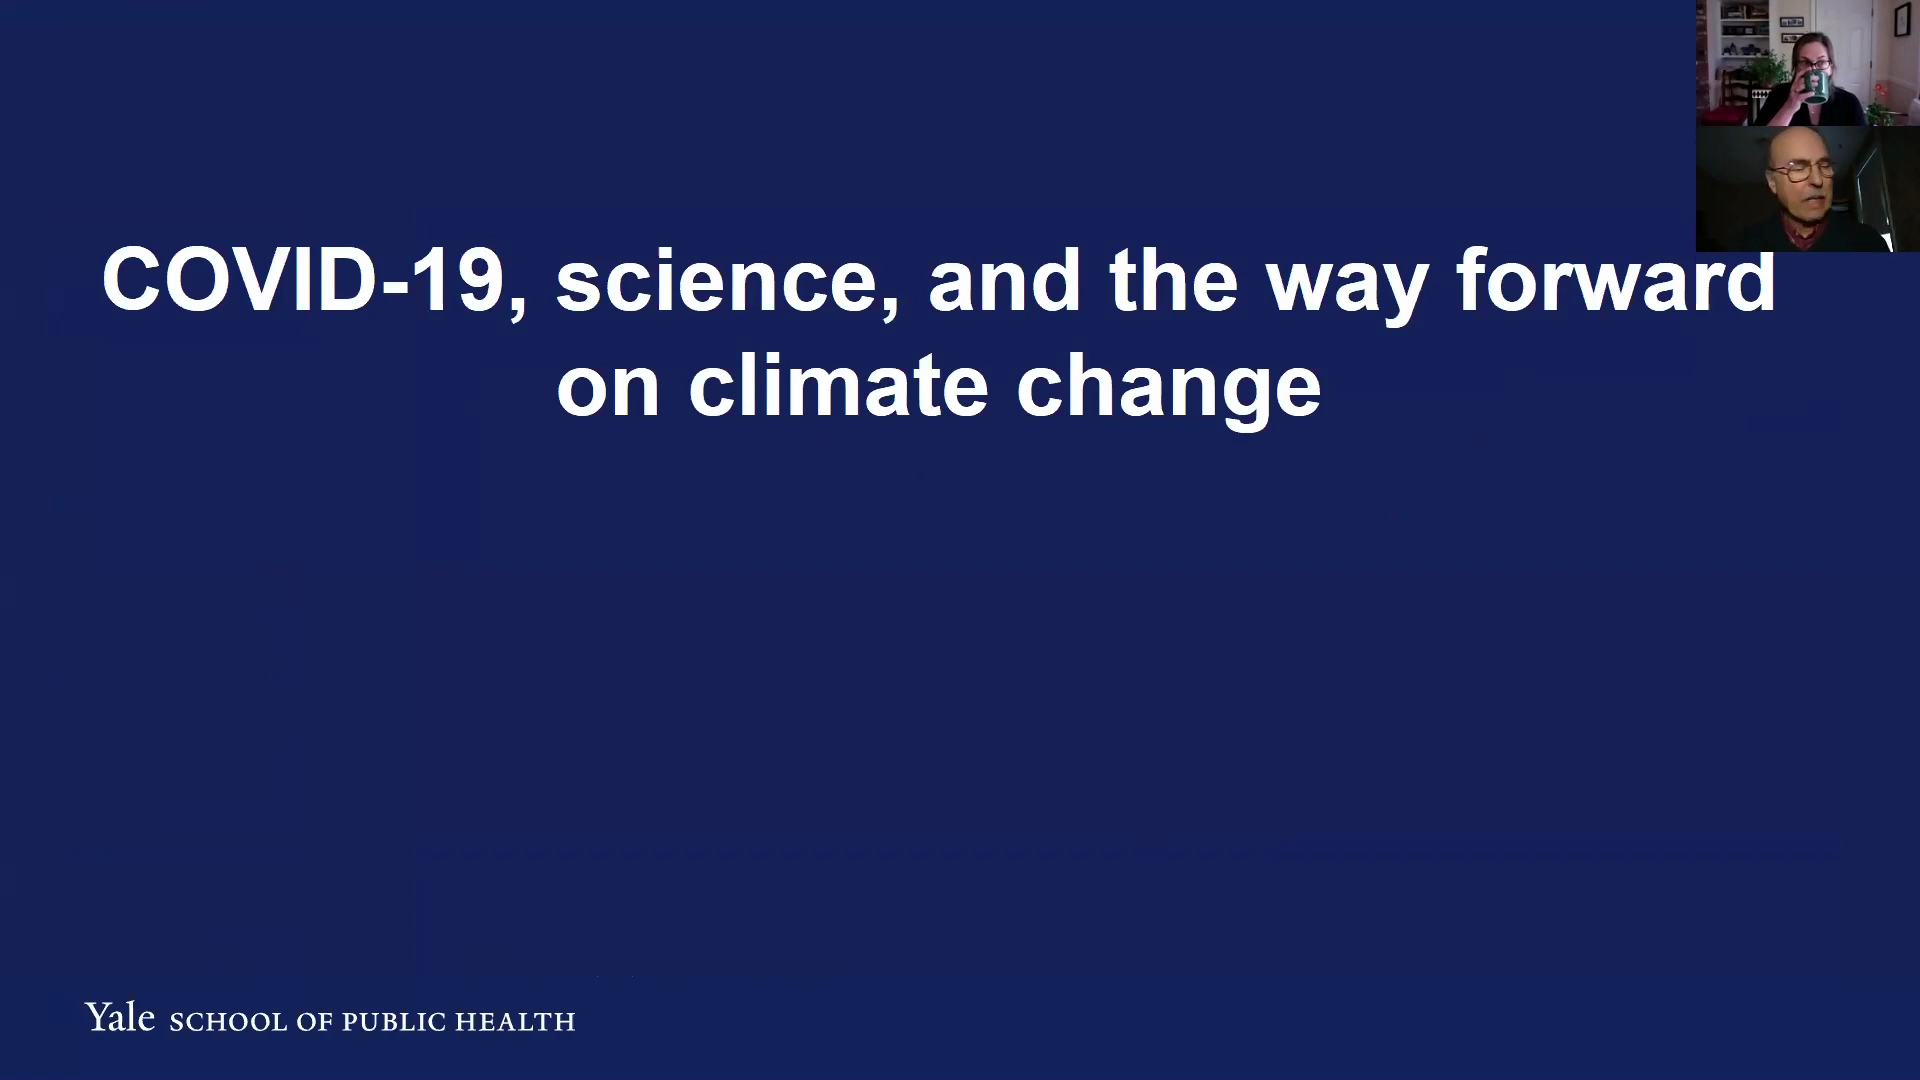 COVID-19, Science and the Way Forward on Climate Change